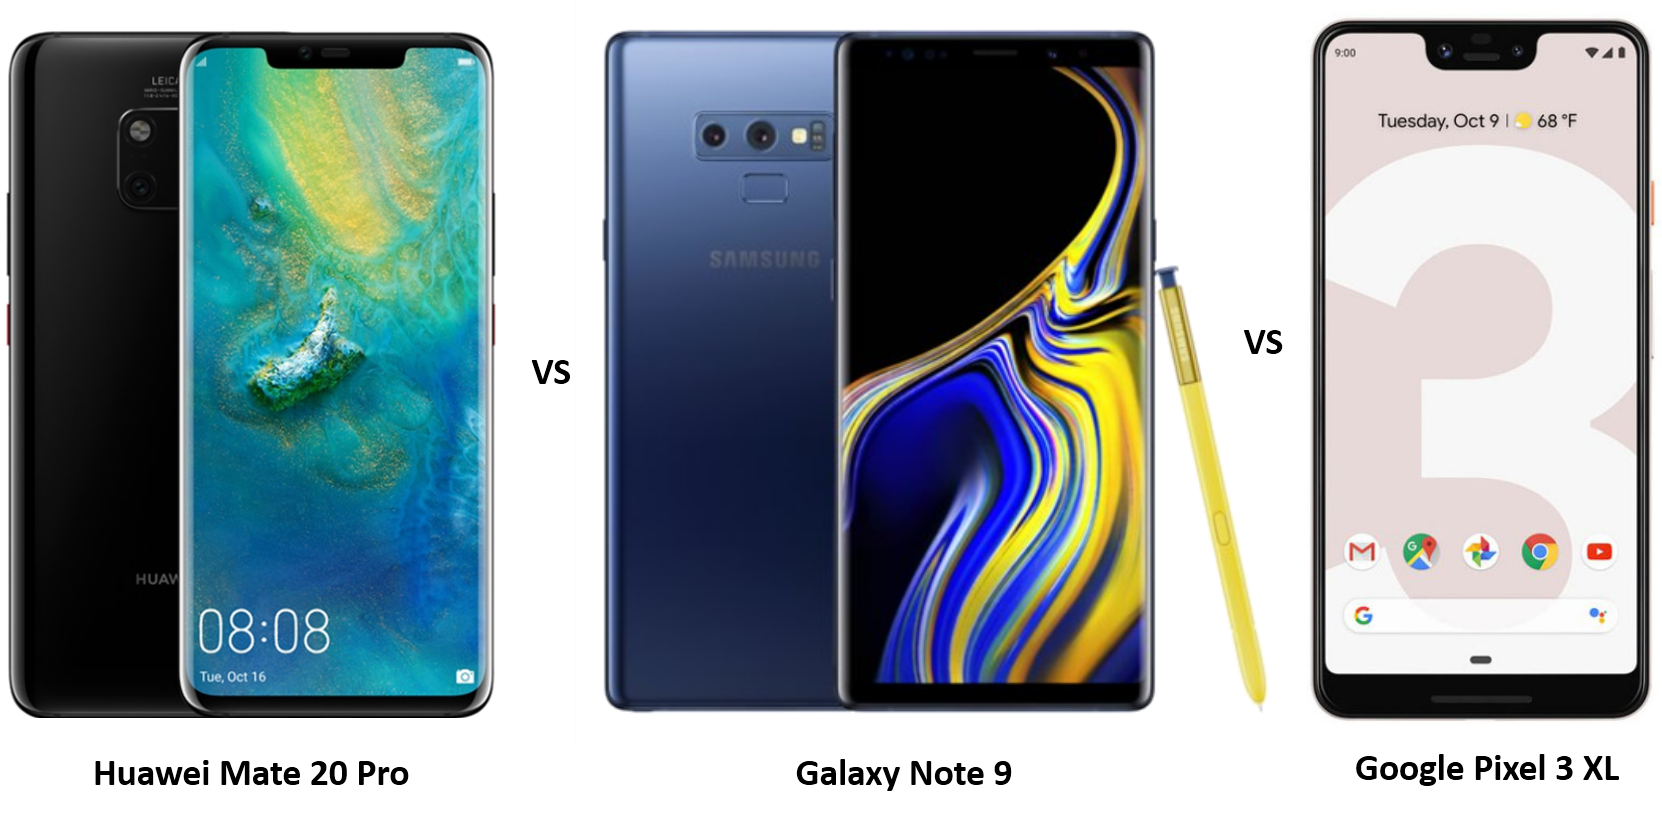 Huawei Mate 20 Pro vs Samsung Galaxy Note 9 vs Google Pixel 3 XL: The Battle of Flagships